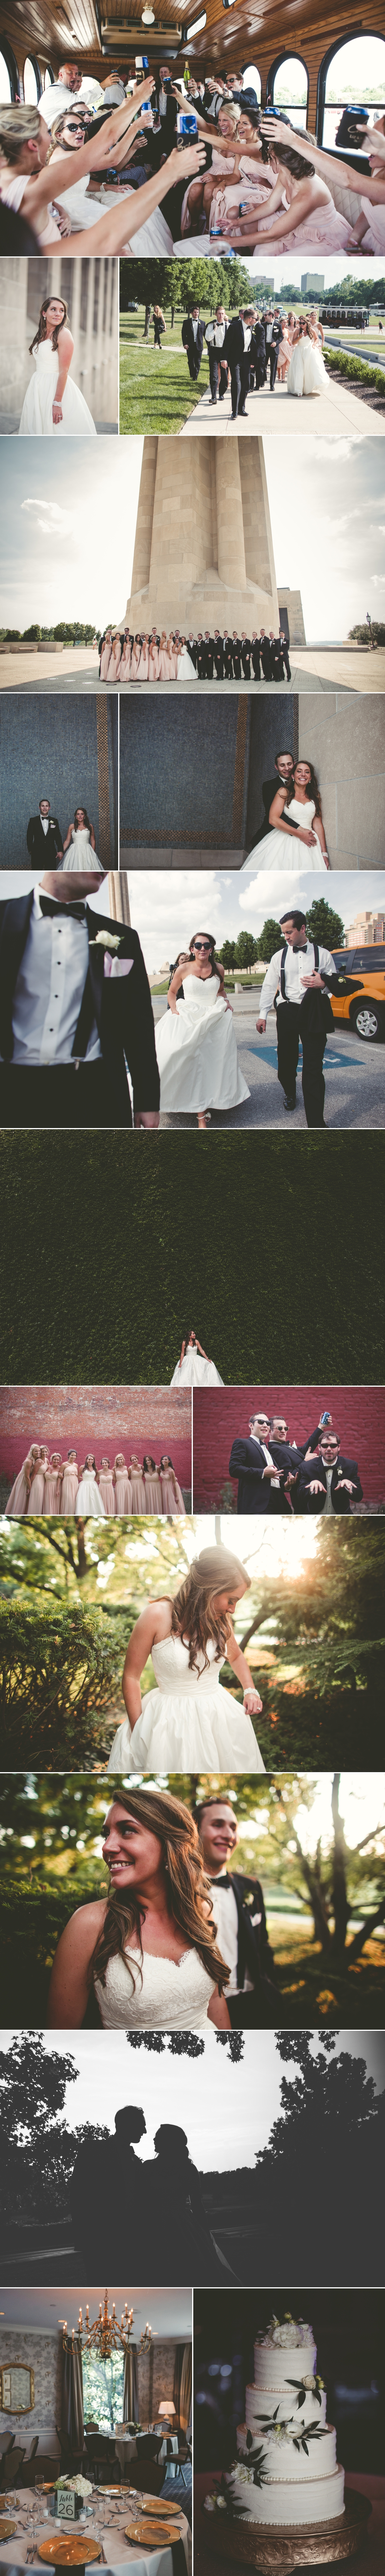 jason_domingues_photography_best_kansas_city_wedding_photographer_kc_carriage_club_3